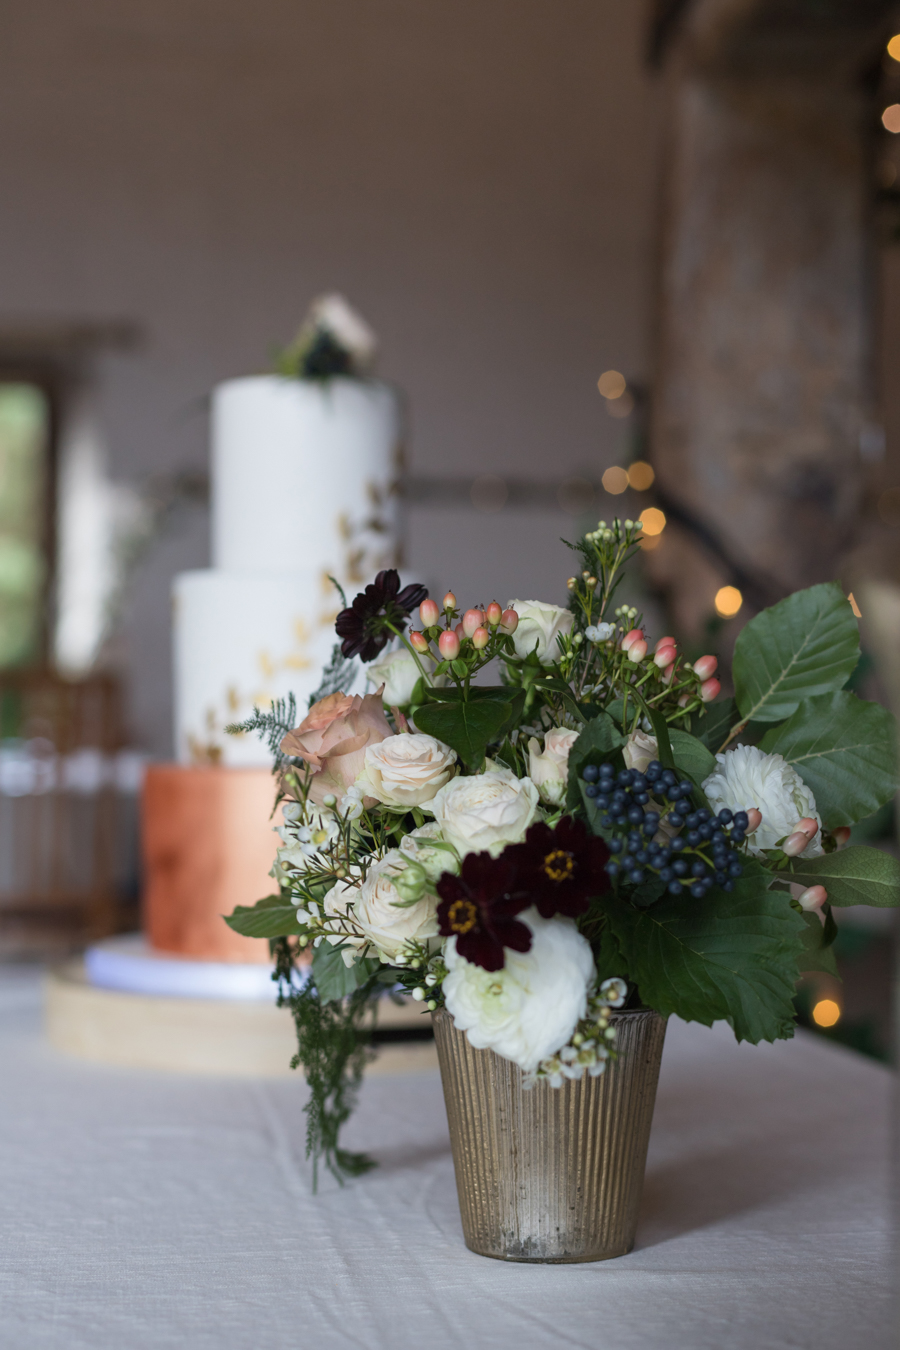 Rustic Romance at Ufton Court, with Sigi Kirkpatrick Photography (4)